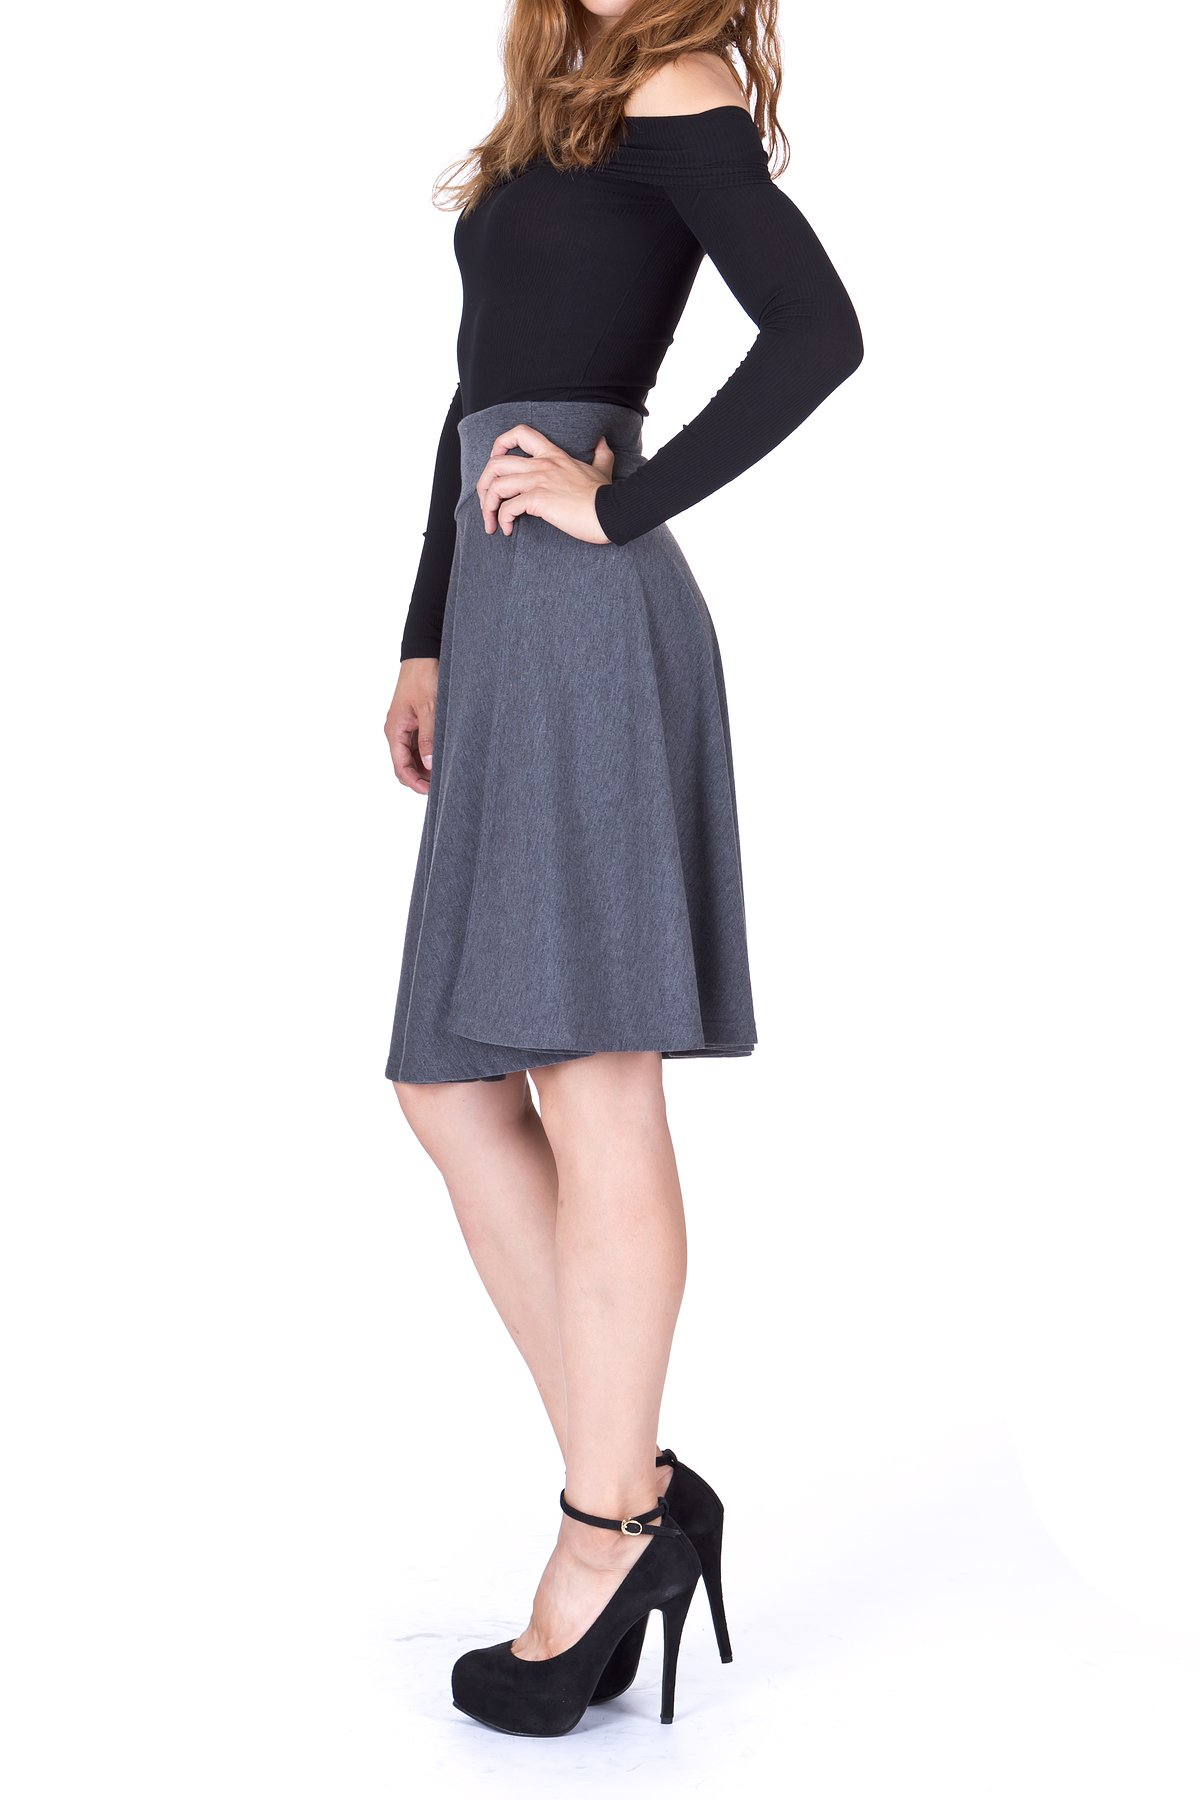 Impeccable Elastic High Waist A line Full Flared Swing Skater Knee Length Skirt Charcoal 3